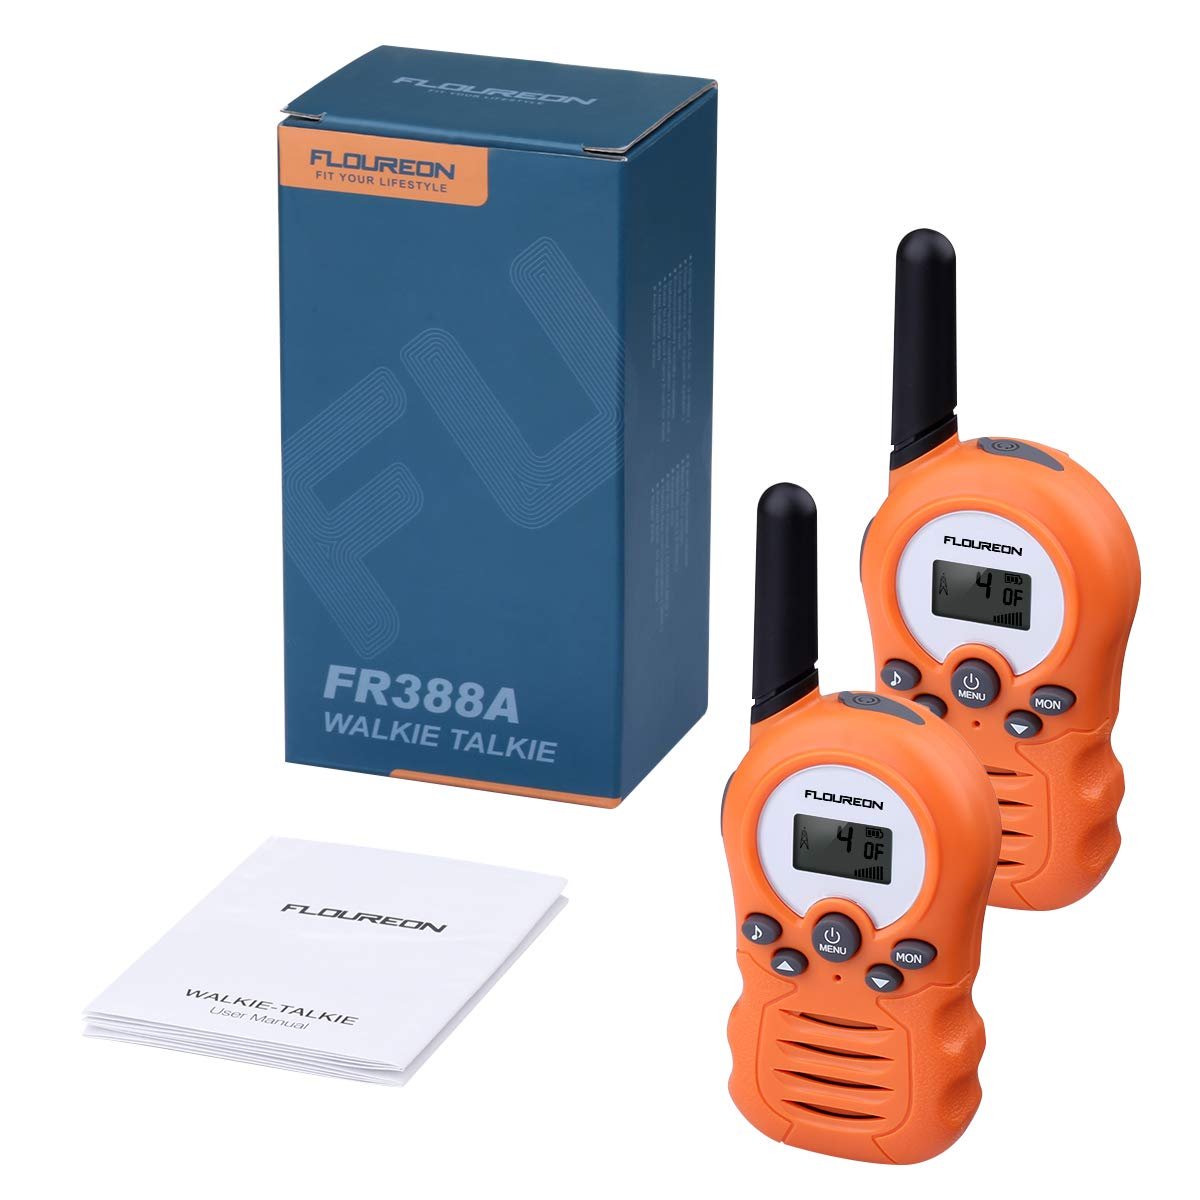 FLOUREON Twins Walkie Talkies 8 Channel PMR446MHZ Two Way Radio for Kids Up to 3300Meters/3Miles Range Handheld Interphone License-Free Orange